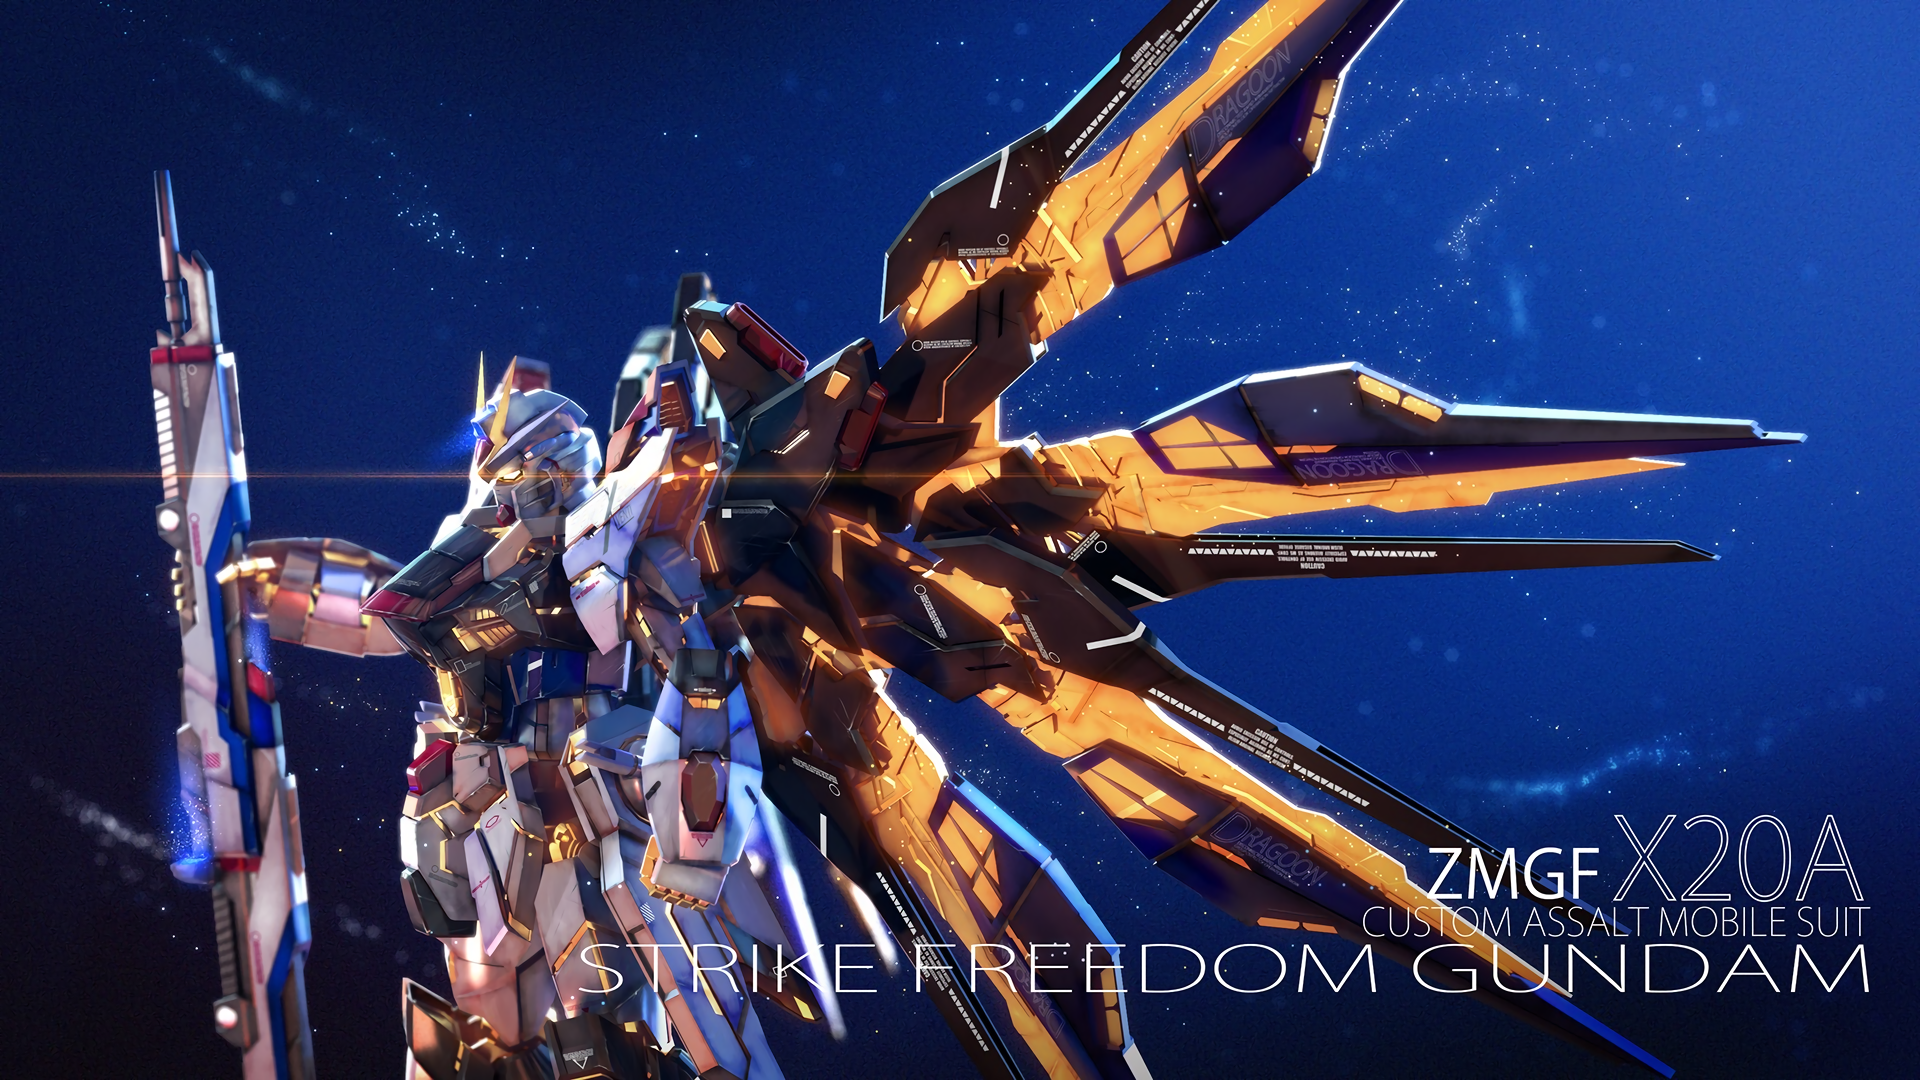 1920x1080 - Mobile Suit Gundam Seed Destiny Wallpapers 6